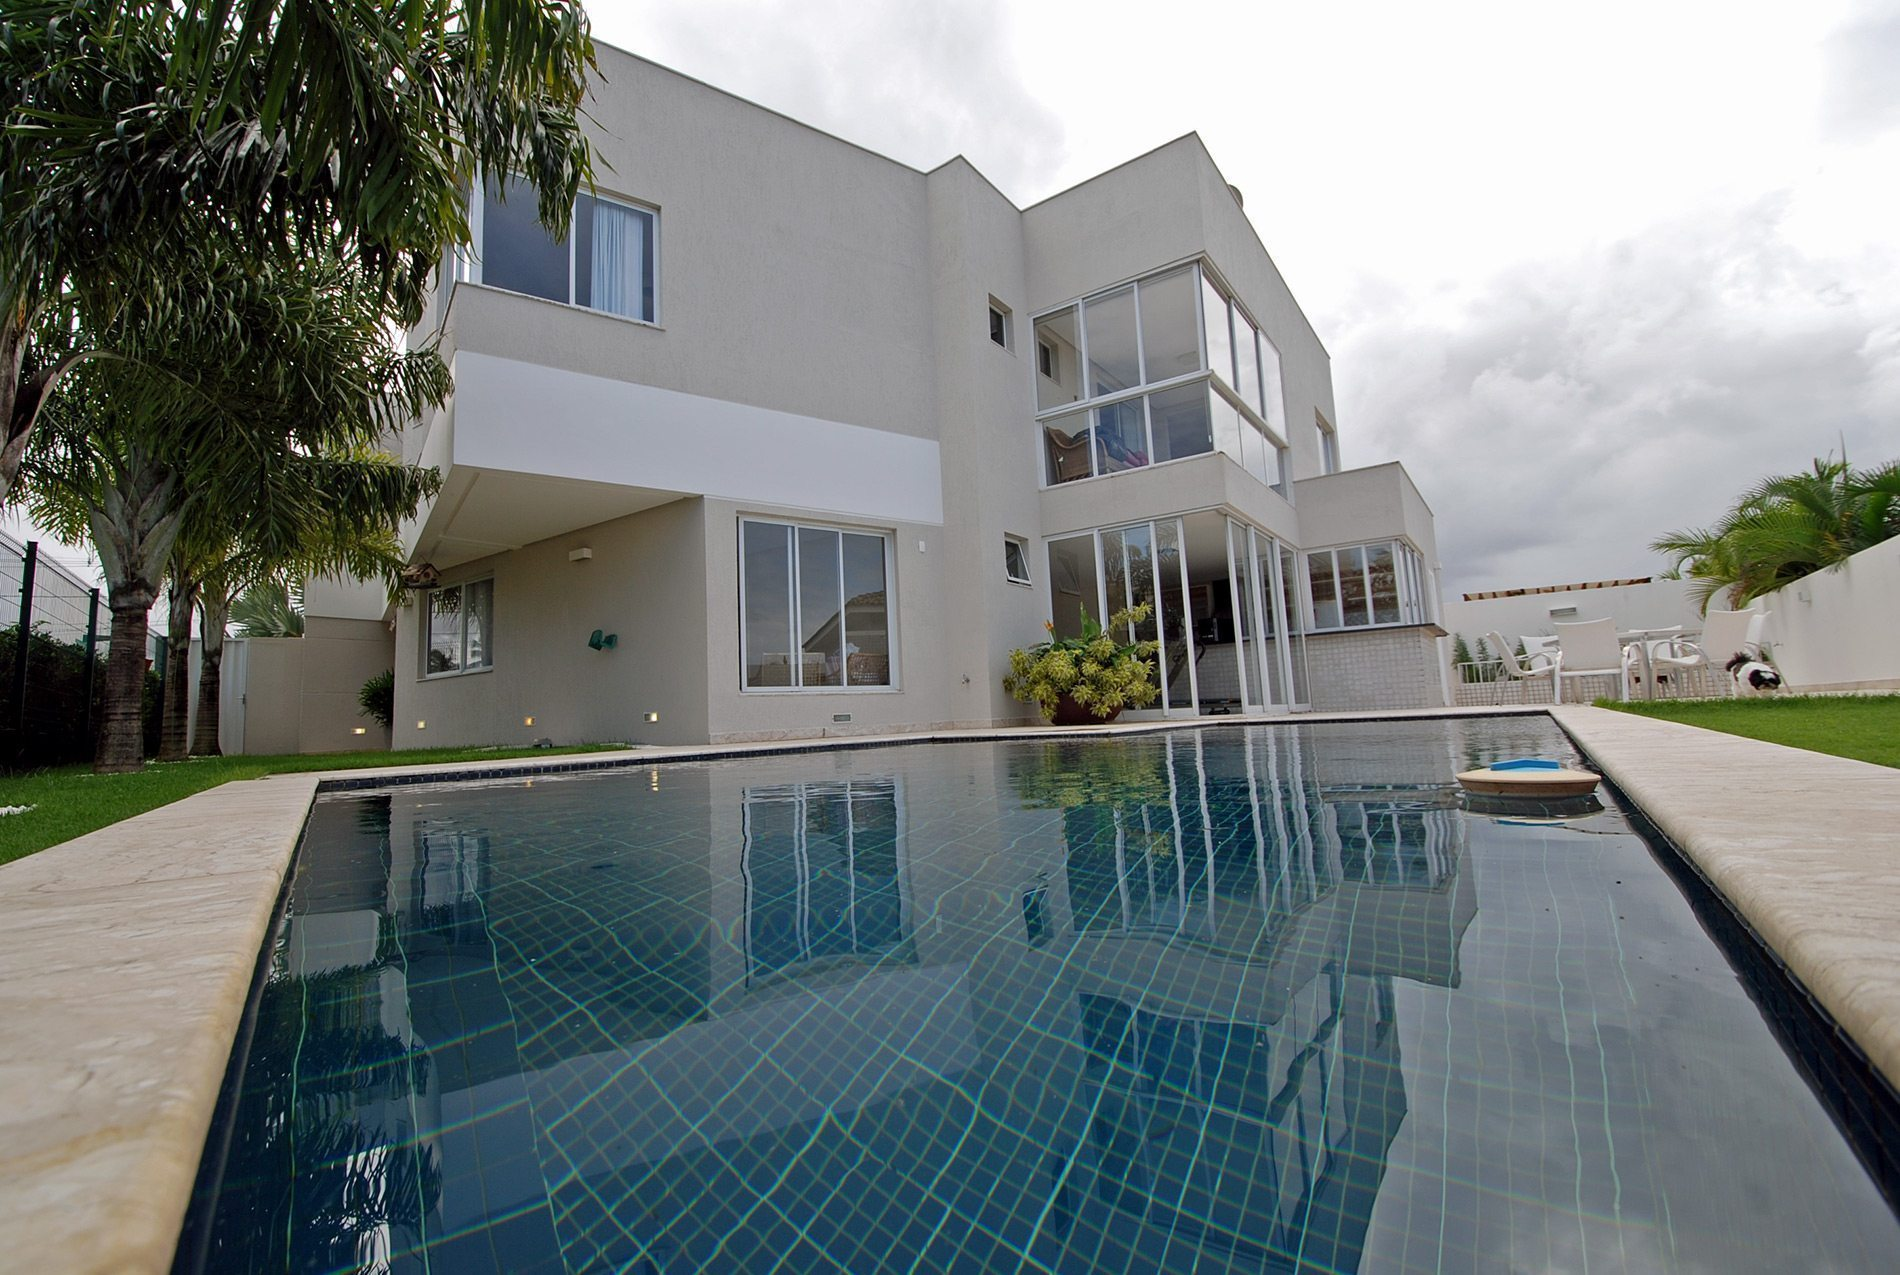 Luxury home for sale Alphaville Litoral Norte 1